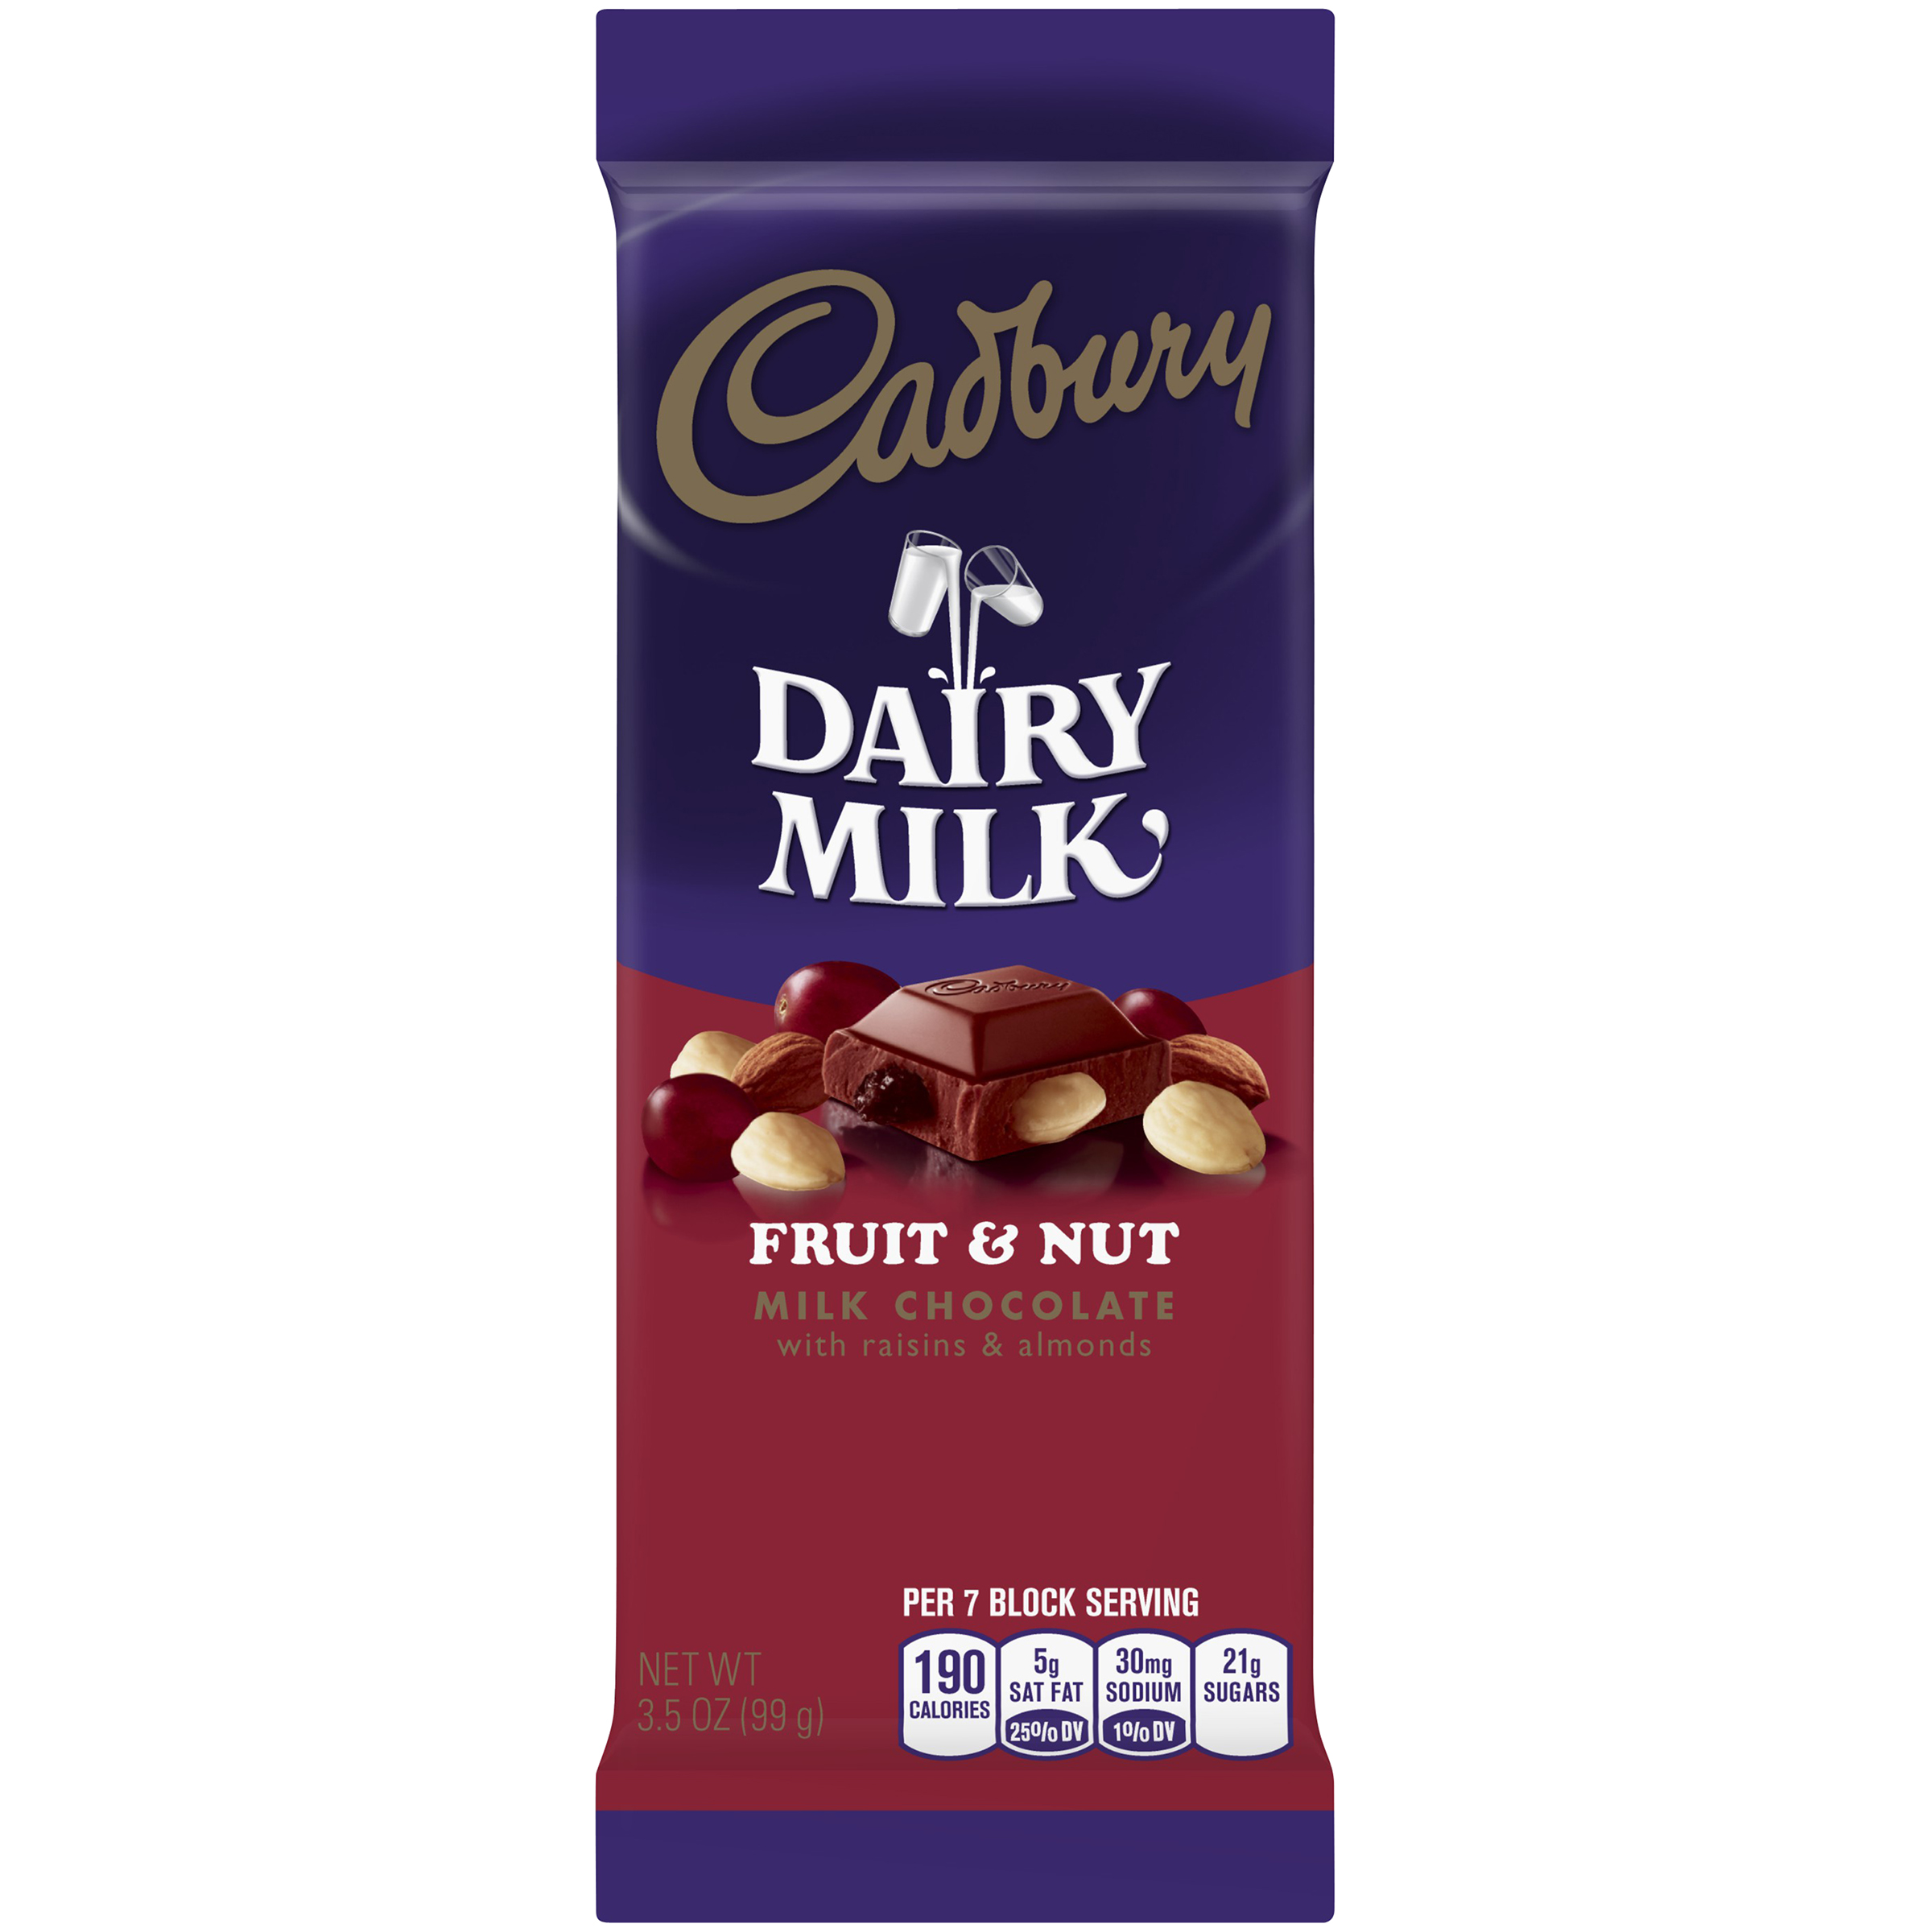 CADBURY DAIRY MILK Fruit & Nut Milk Chocolate Bar, 3.5 oz